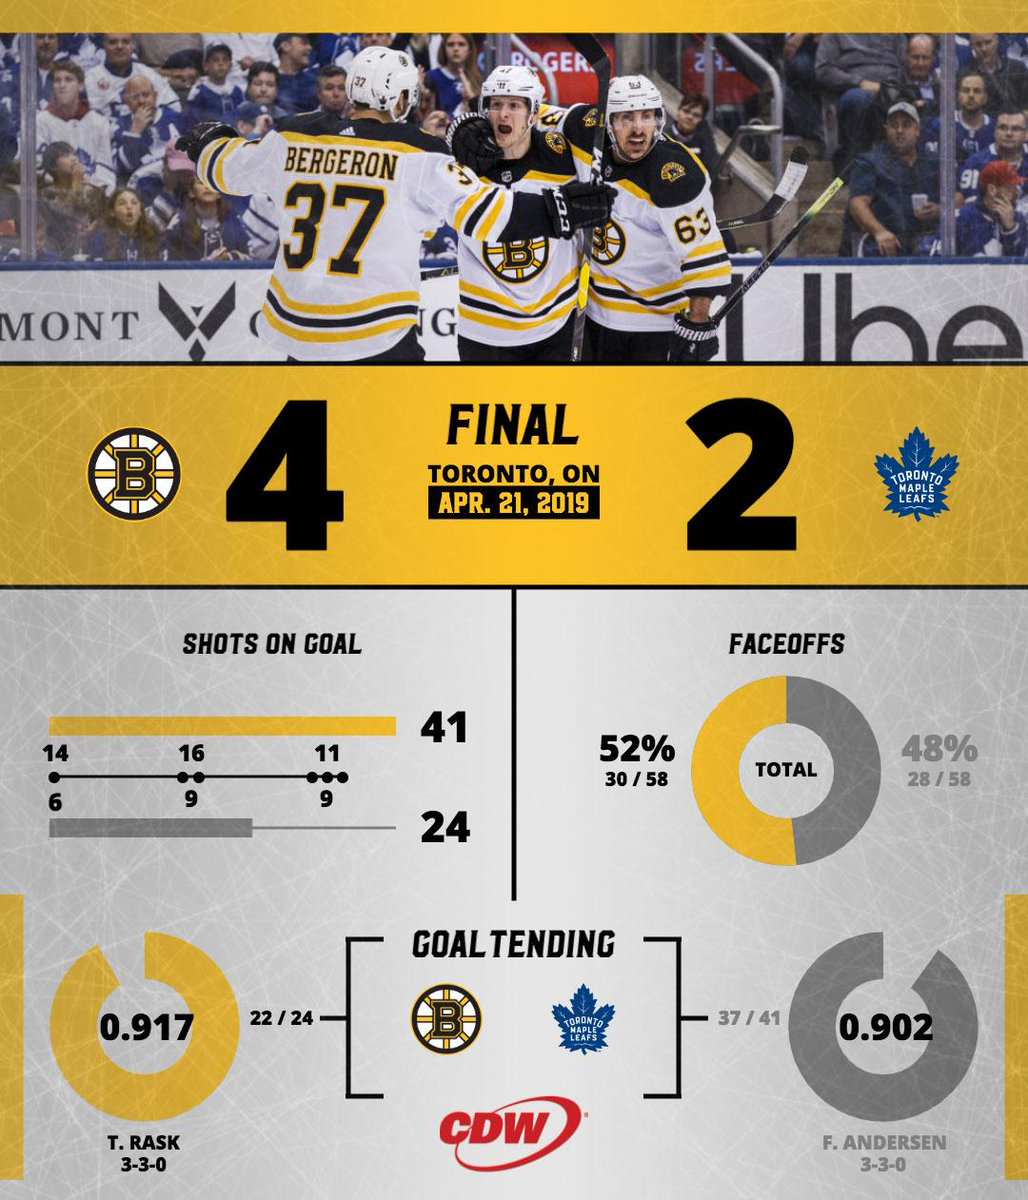 Here's your @CDWCorp postgame infographic from today's #NHLBruins win. 🙌